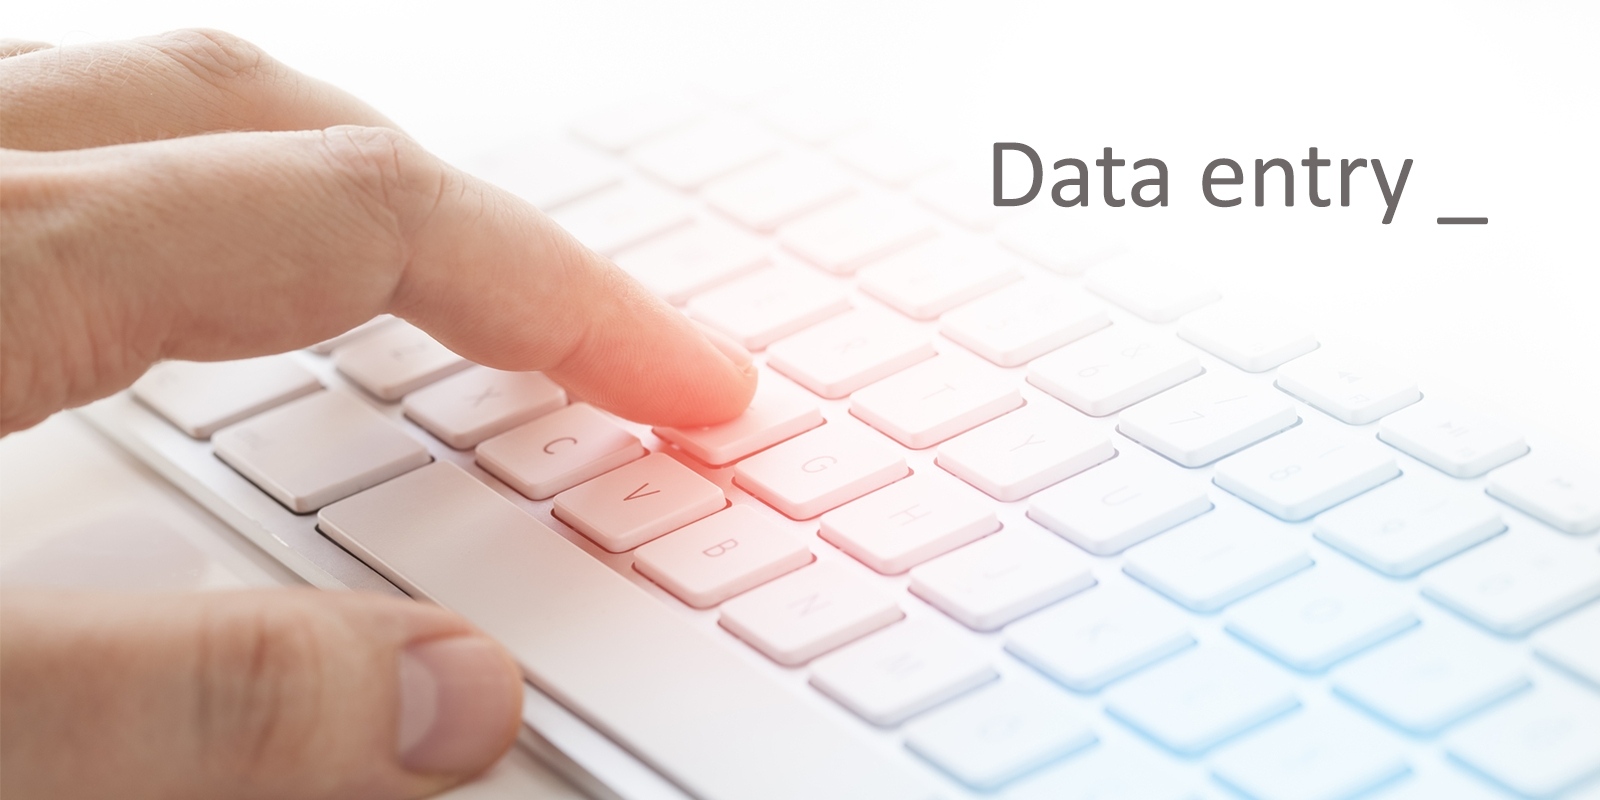 We work for data entry. working for more than 2 years. we complete the work with more accuracy.